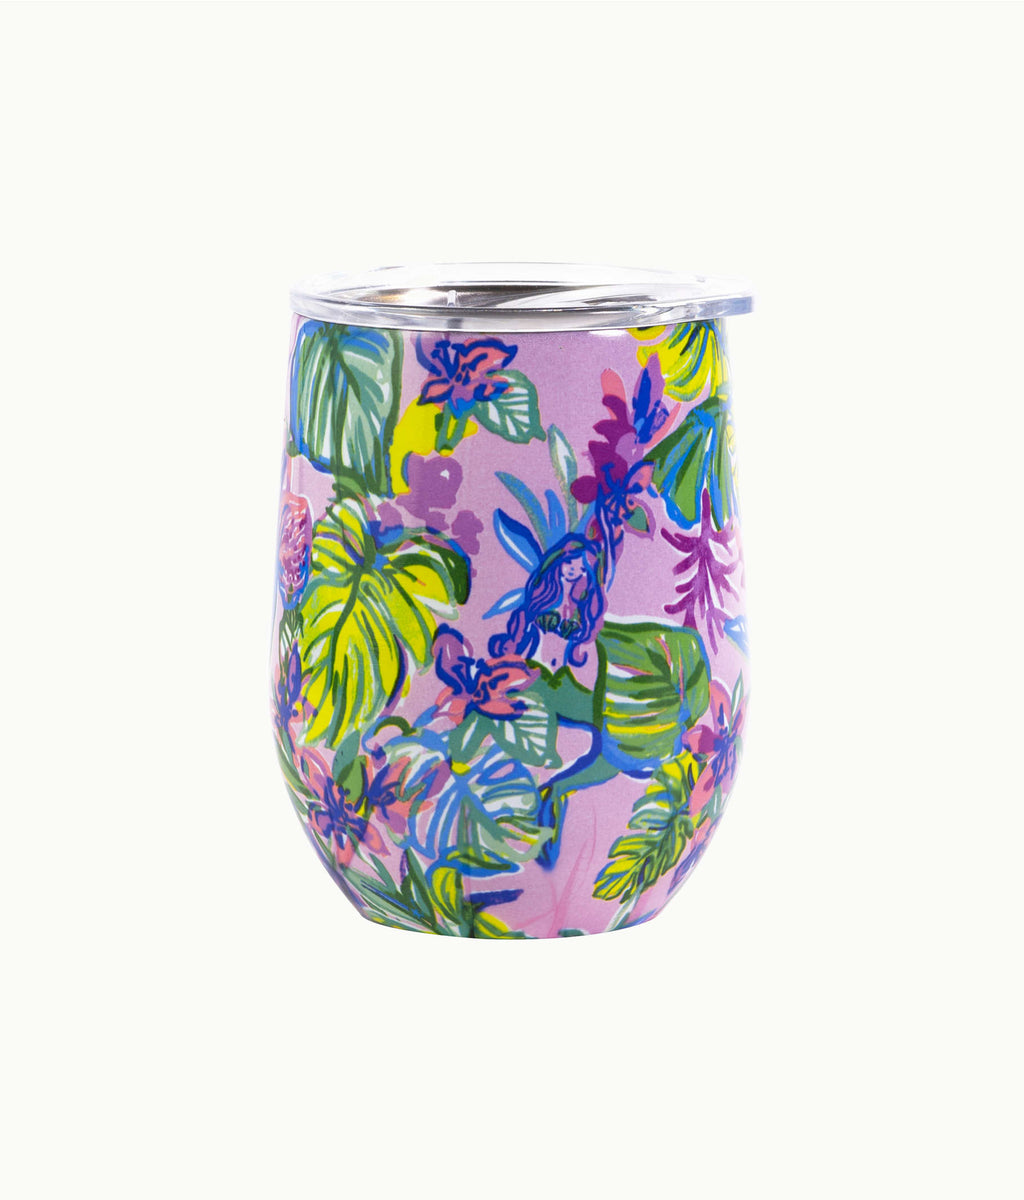 Lilly Pulitzer Insulated Stemless Tumbler in Mermaid in the Shade